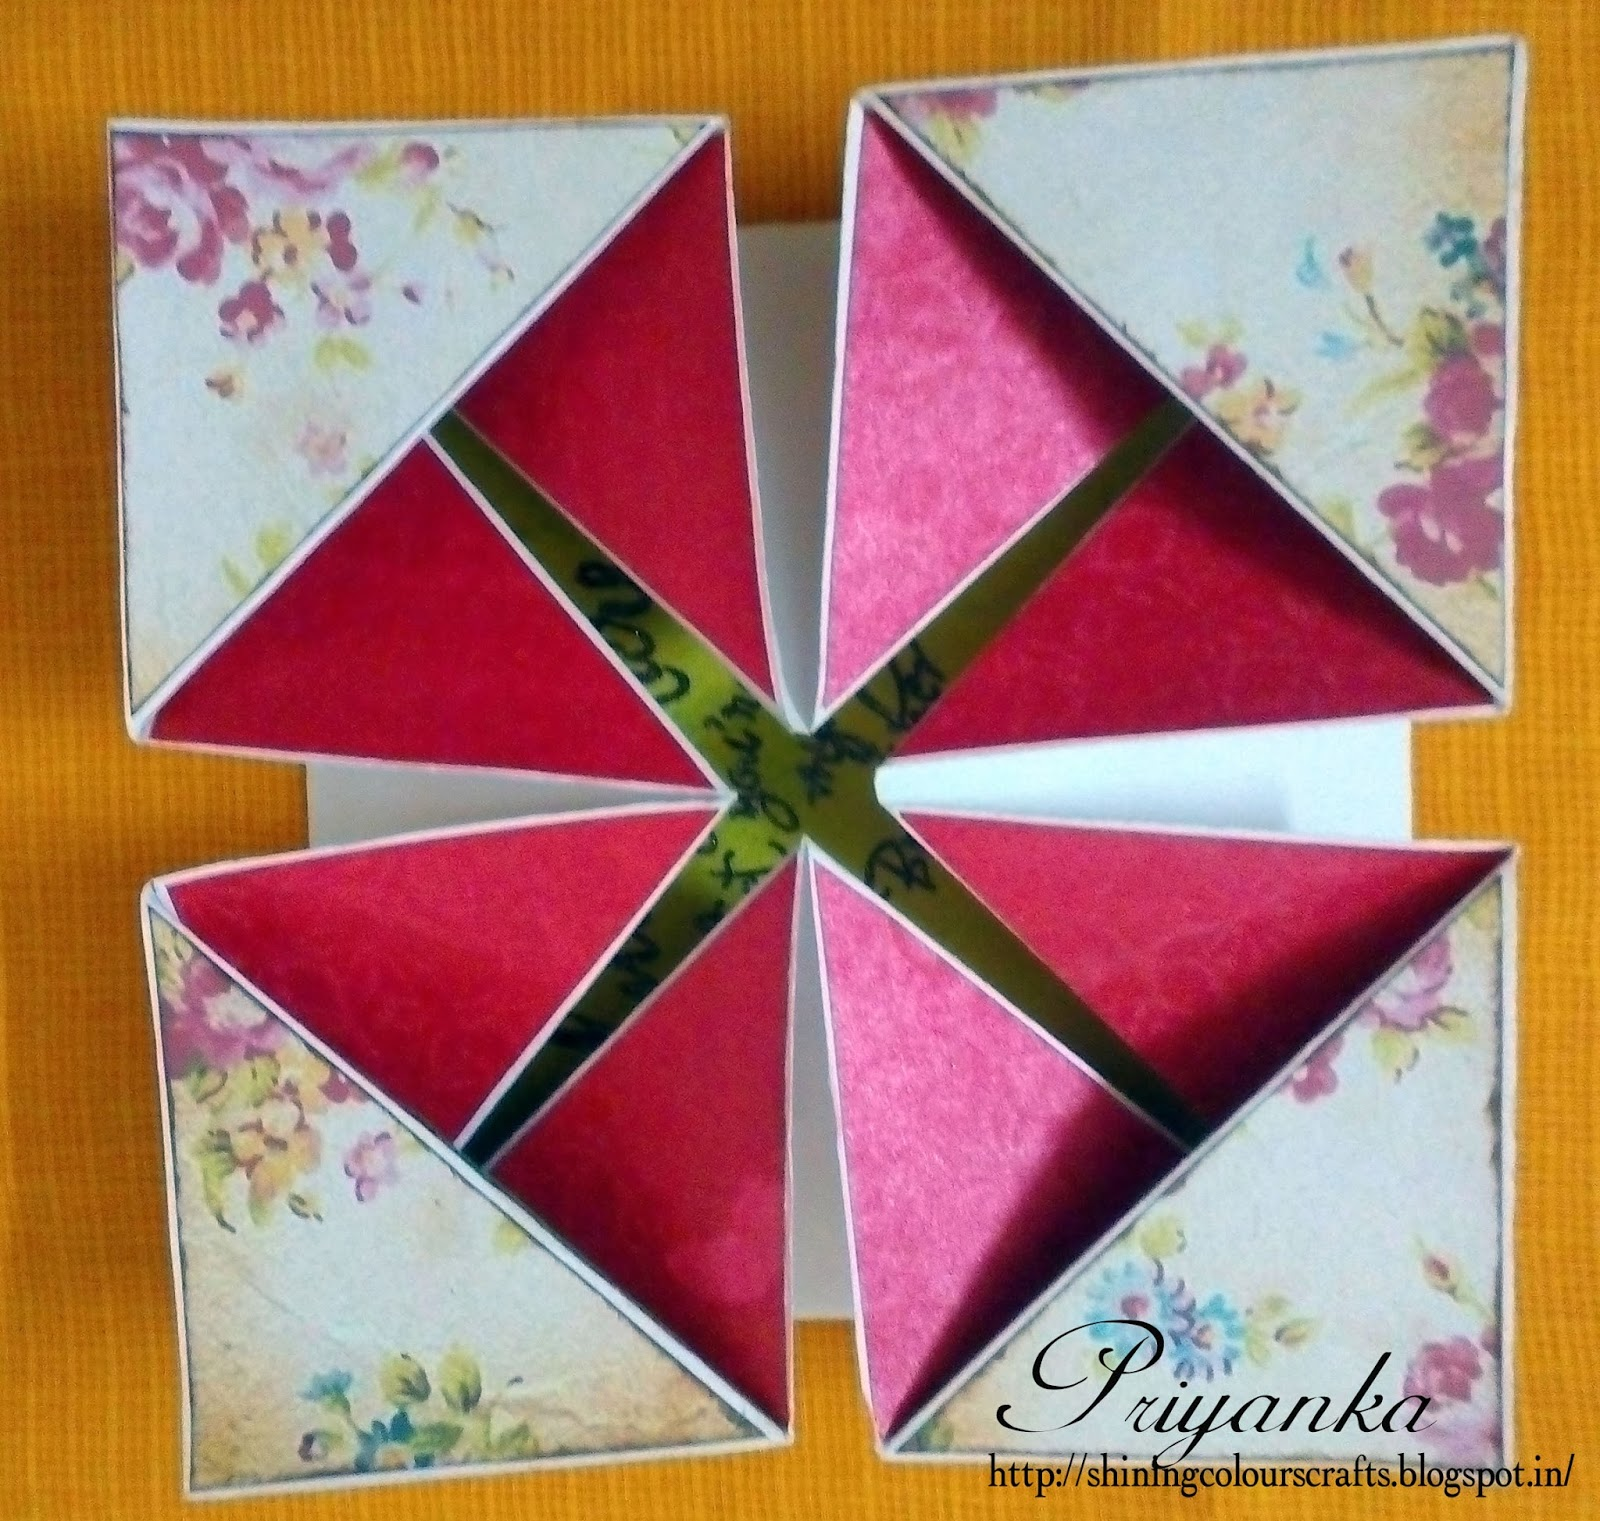 shining colours handmade crafts  napkin fold card with